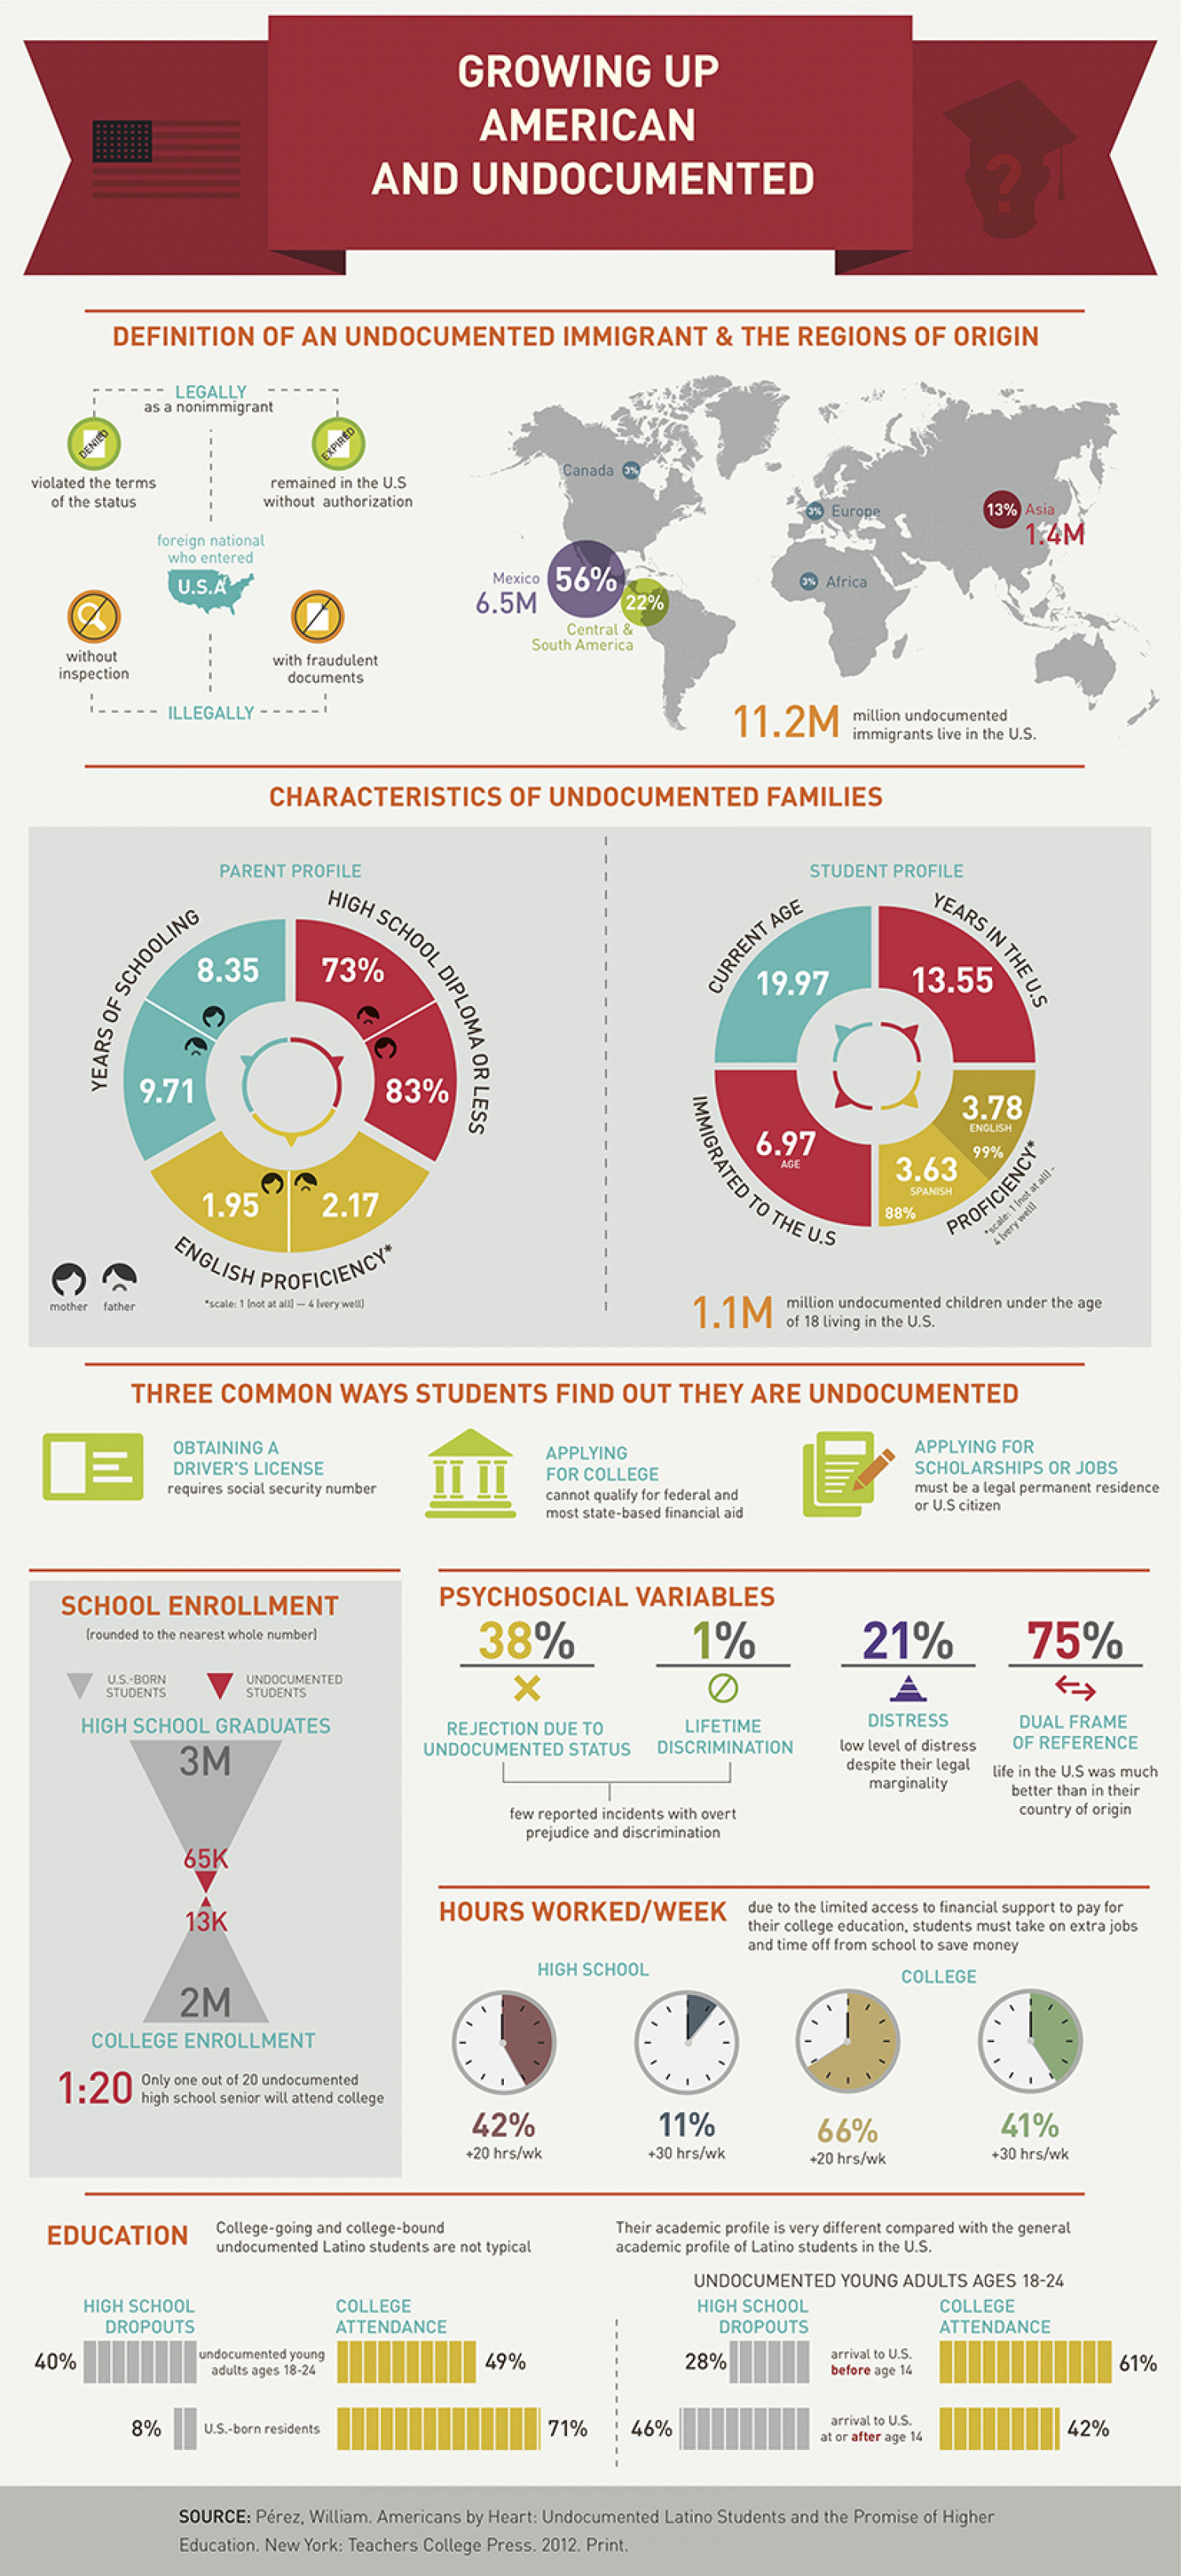 Growing Up American and Undocumented Infographic